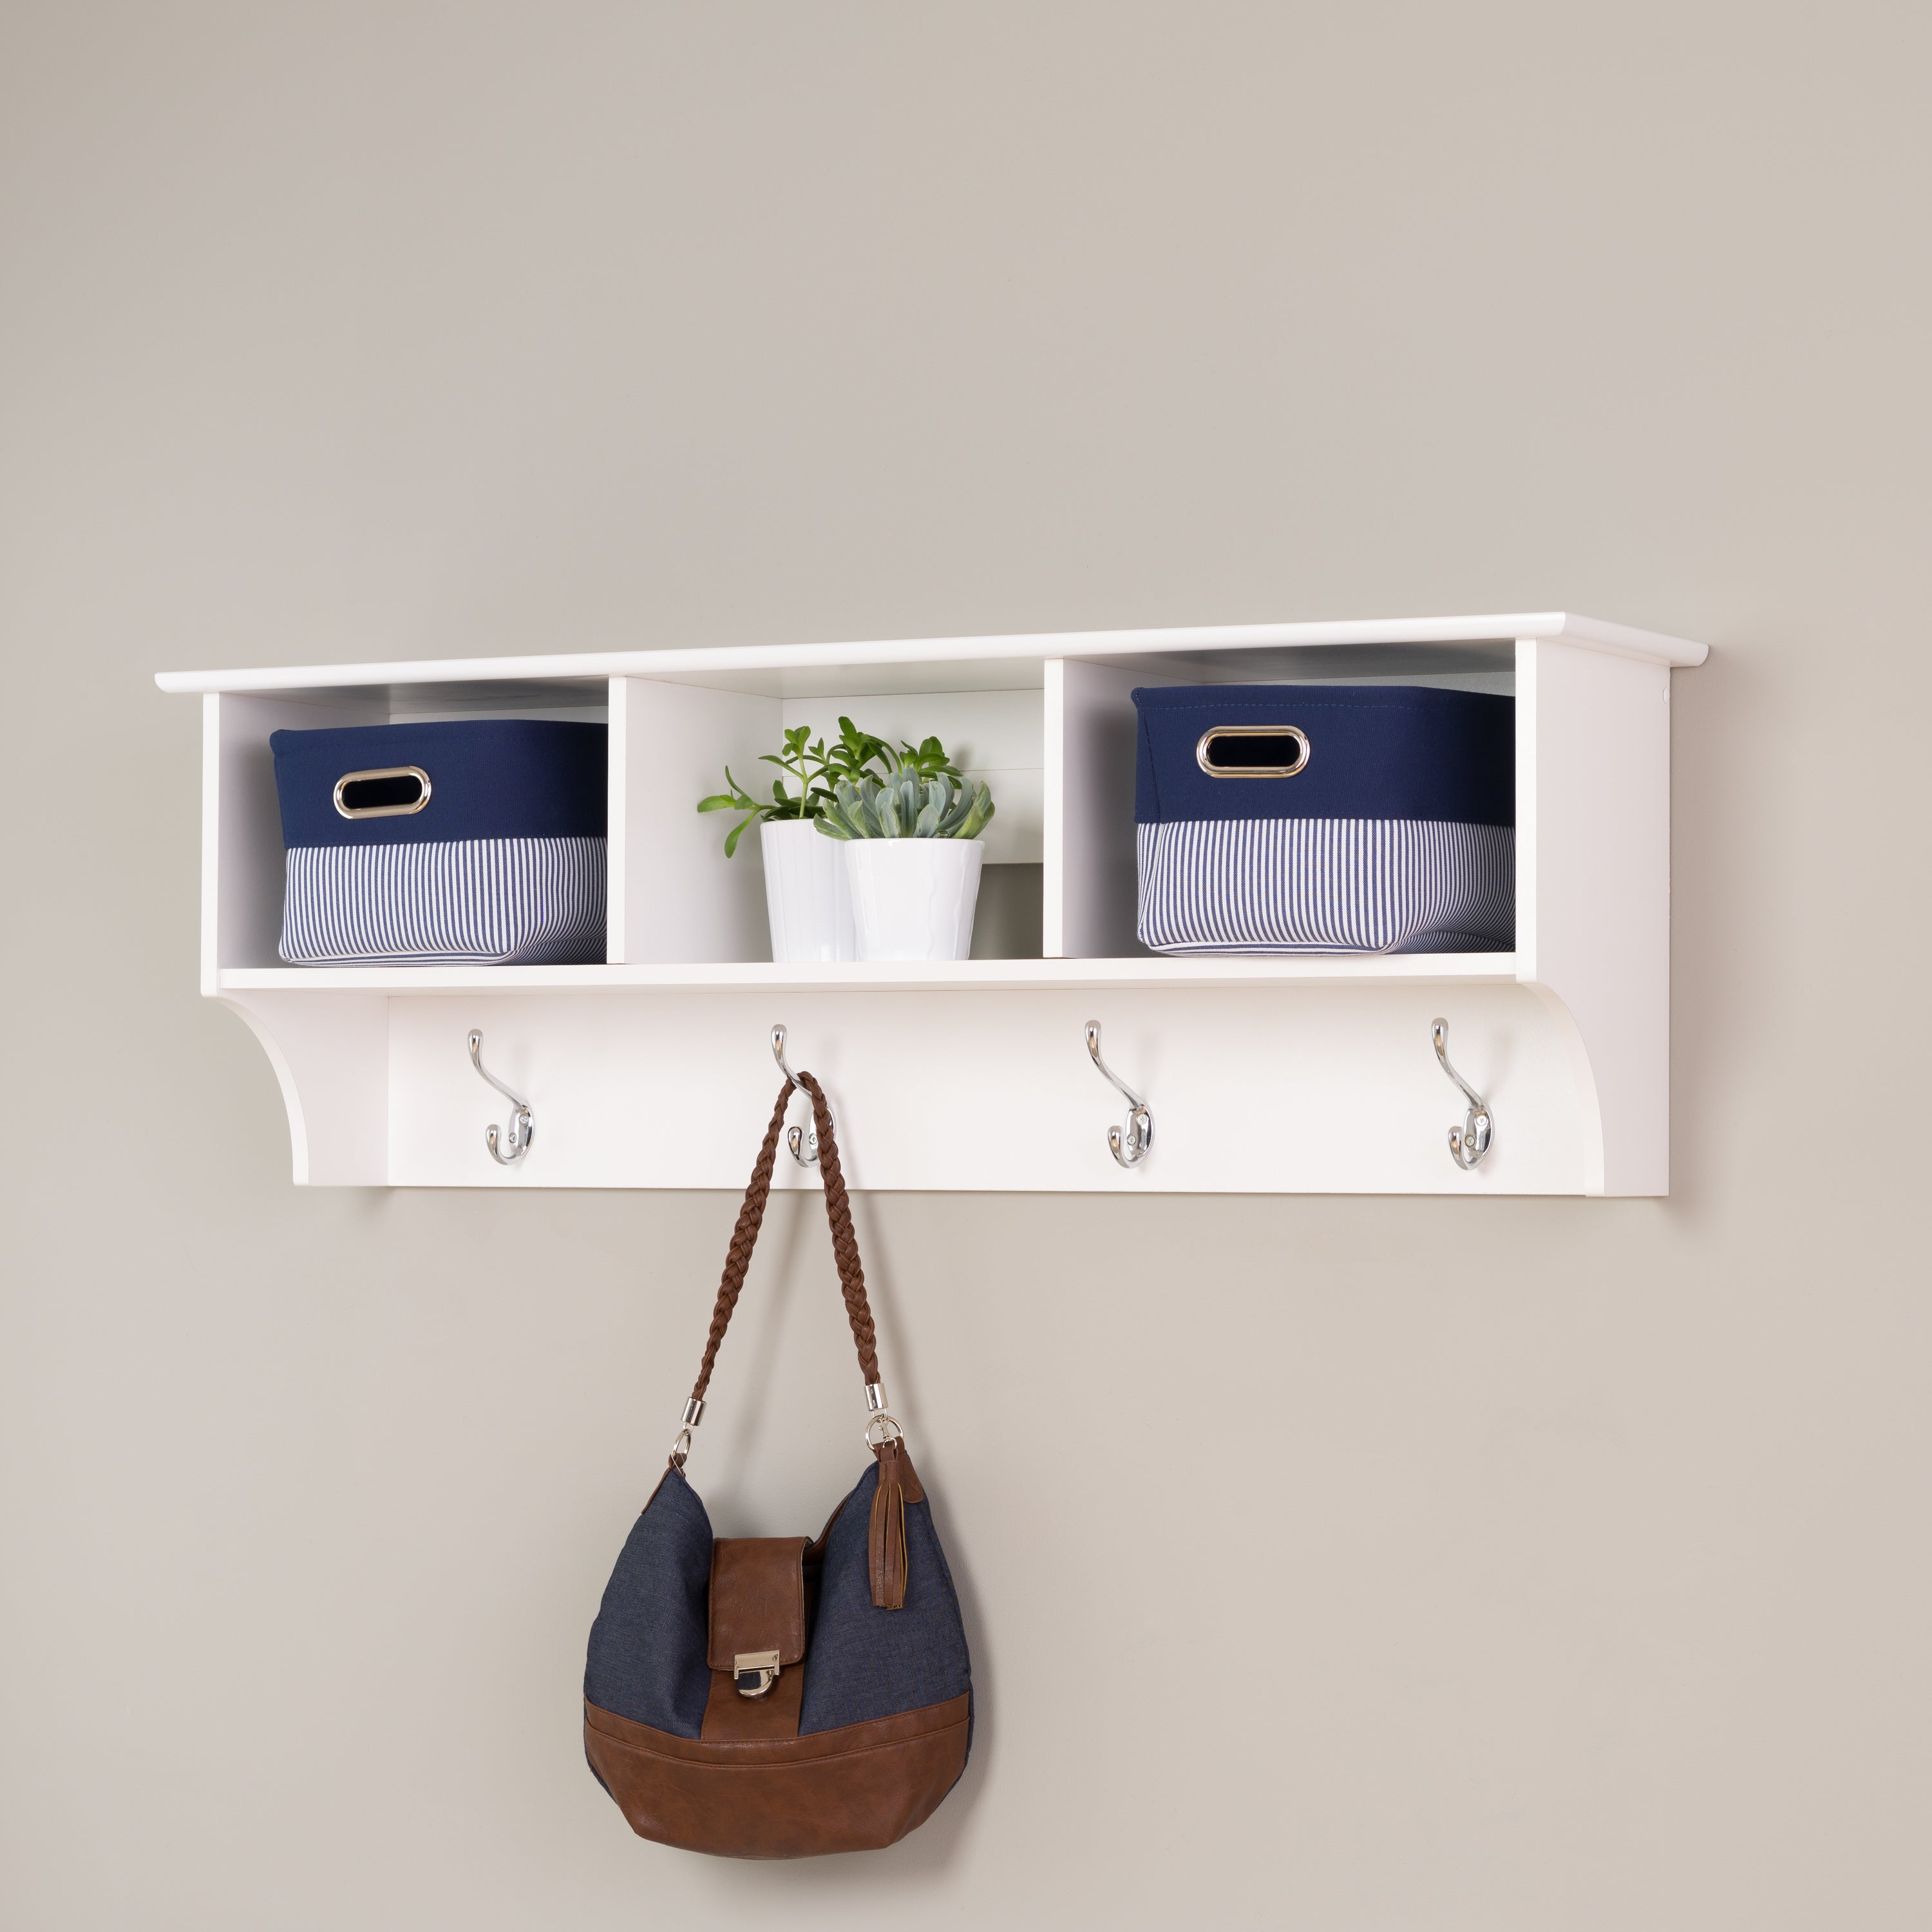 Marvelous photograph of Includes: One (1) hanging shelf Materials: MDF composite wood Finish  with #603B2C color and 3000x3000 pixels